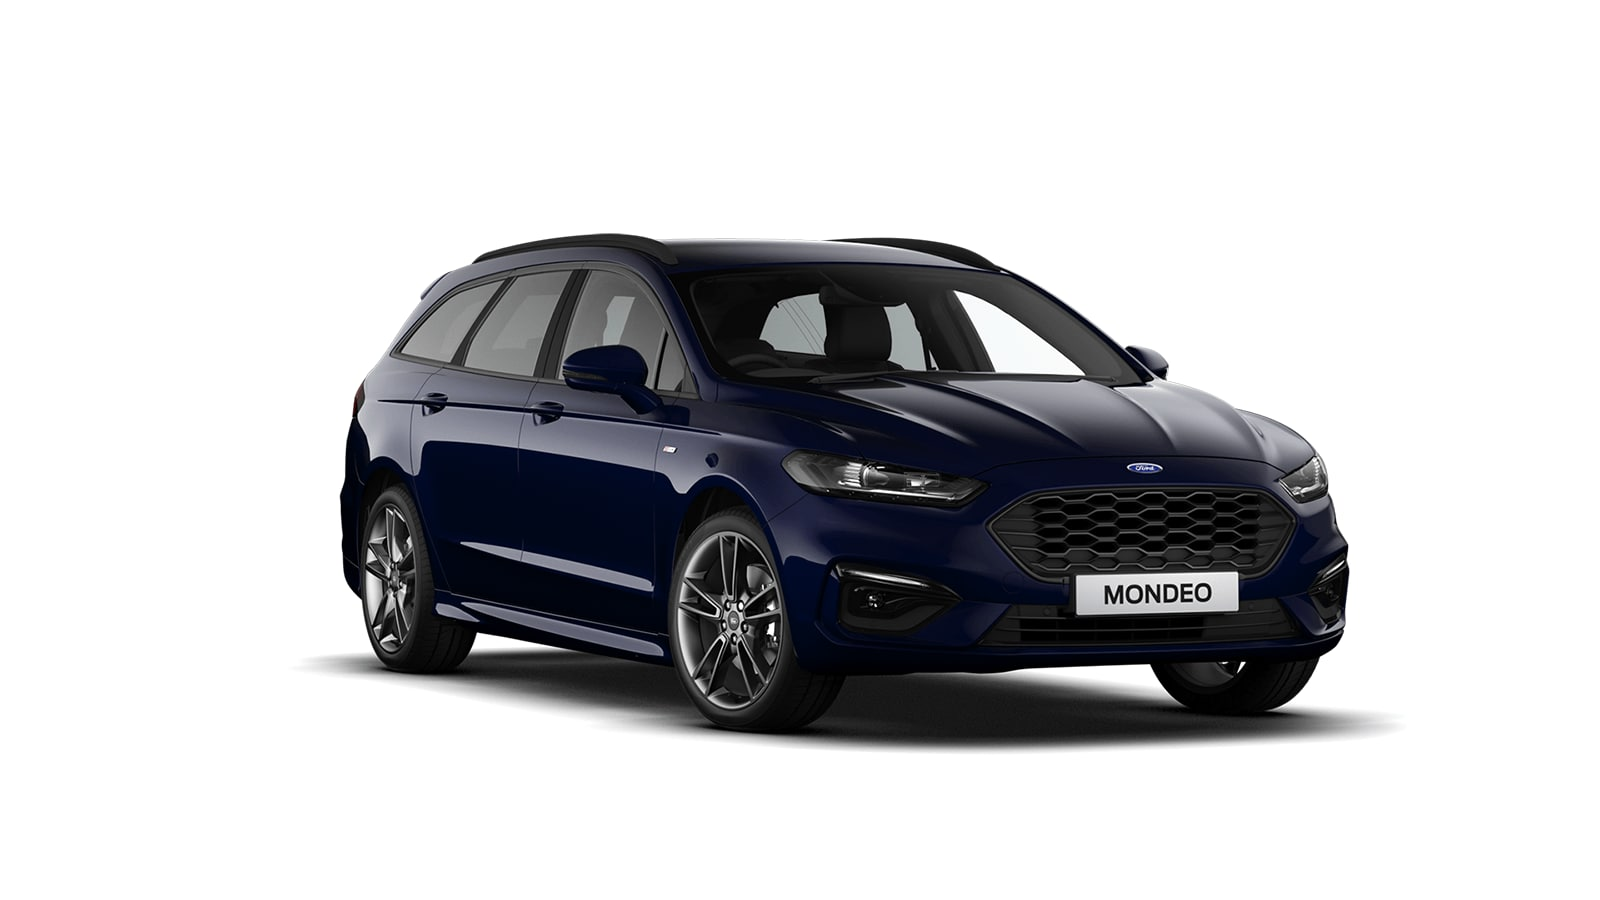 Ford Mondeo at Balmoral Garage